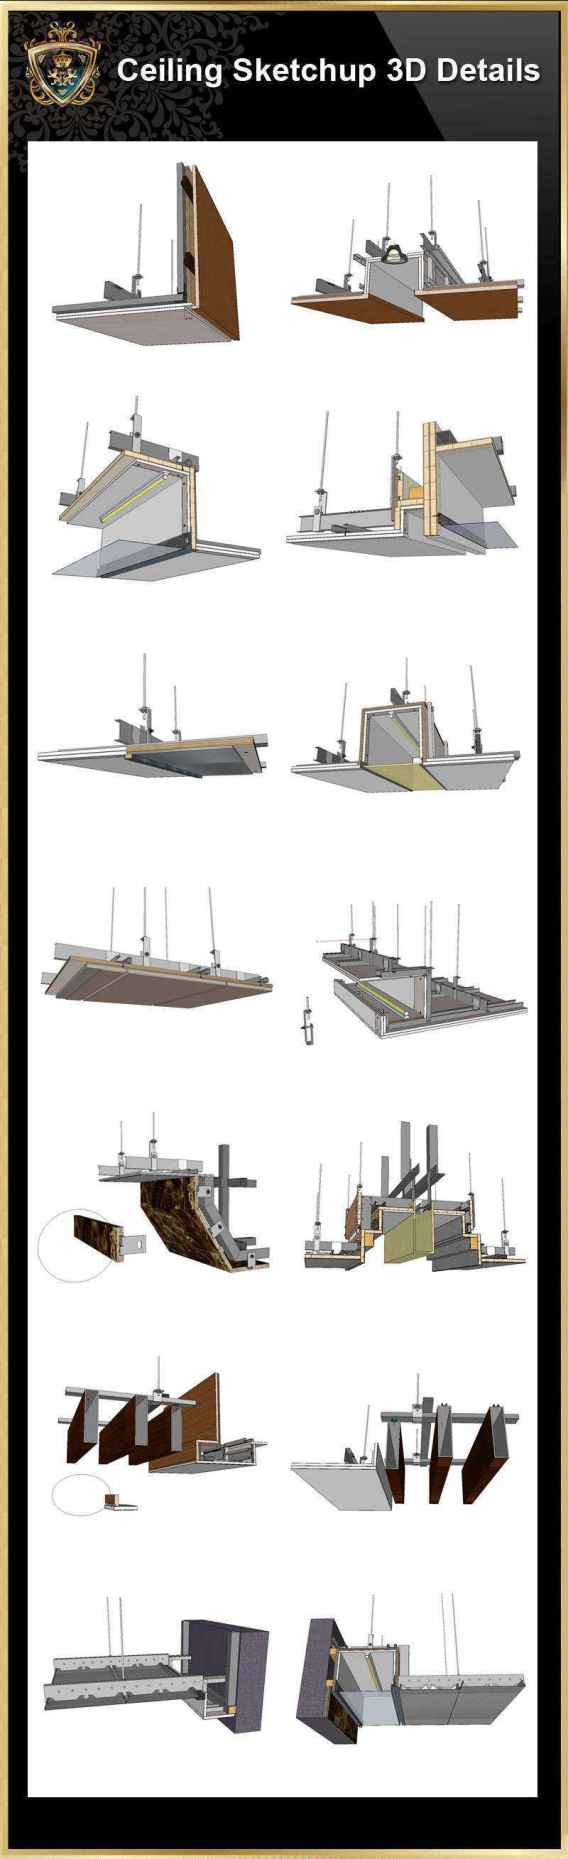 【Best 70 Types Ceiling Sketchup 3D Detail Models】 (★Recommanded★)(*.skp file format). ThisSketchup 3D CAD modelscollection can be used in your 3D design drawings(Sketchup,Autocad,3D max,Revit). Download Best 70 Types Ceiling Sketchup 3D Detail Models(*.skp file format). This Sketchup 3D models collection can be used in your 3D design software(Sketchup,Autocad,3D max,Revit).Downloading 3D Sketchup Models to fuel your creative pursuits. Include the followings sketchup 3D Models: Sketchup Ceiling Details-01-light steel frame ceiling - hard cover ceiling.skp Sketchup Ceiling Details-01-plasterboard ceiling .skp Sketchup Ceiling Details-02-plasterboard ceiling - gold and silver foil ceiling .skp Sketchup Ceiling Details-02-plasterboard ceiling - sewed ceiling.skp Sketchup Ceiling Details-03-plasterboard ceiling - Malay paint, diatom mud.skp Sketchup Ceiling Details-03-plasterboard ceiling-mirror ceiling.skp Sketchup Ceiling Details-04-stainless steel ceiling.skp Sketchup Ceiling Details-04-wood veneer ceiling.skp Sketchup Ceiling Details-05-mineral wool board ceiling-1.skp Sketchup Ceiling Details-05-mineral wool board ceiling-2.skp Sketchup Ceiling Details-06-calcium silicate board ceiling.skp Sketchup Ceiling Details-06-mineral wool board ceiling.skp Sketchup Ceiling Details-07-air conditioning duct.skp Sketchup Ceiling Details-07-glass ceiling.skp Sketchup Ceiling Details-08-air conditioning duct.skp Sketchup Ceiling Details-08-glass partition.skp Sketchup Ceiling Details-09-plasterboard ceiling ceiling connect with stone 2.skp Sketchup Ceiling Details-09-plasterboard ceiling connect with stone 1.skp Sketchup Ceiling Details-10-plasterboard ceiling ceiling connect with glass.skp Sketchup Ceiling Details-10-smoke blocking wall.skp Sketchup Ceiling Details-11-plasterboard ceiling is connected to aluminum plate 1.skp Sketchup Ceiling Details-11-plasterboard ceiling is connected to aluminum plate 2.skp Sketchup Ceiling Details-12-plasterboard ceiling is connected to the m